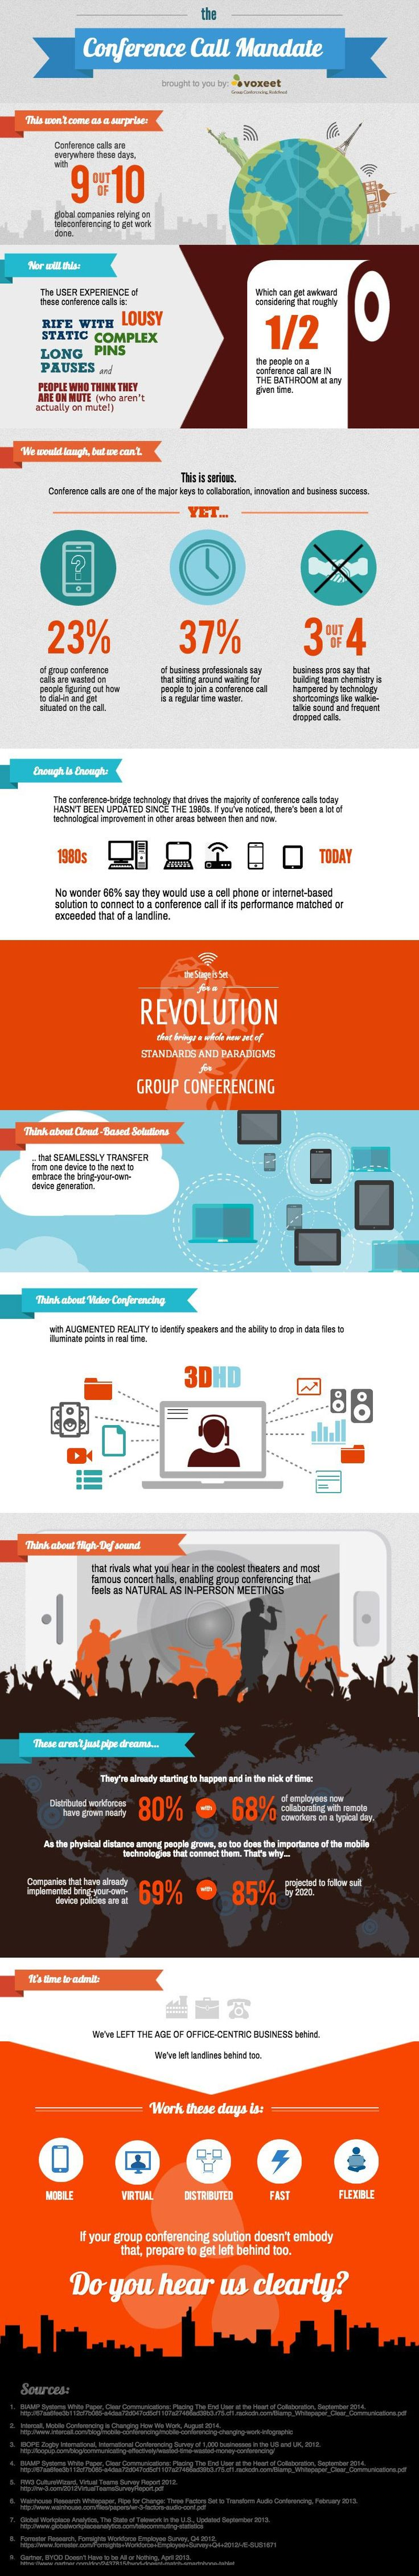 #conferencing #predictions #infographic #innovation #conference